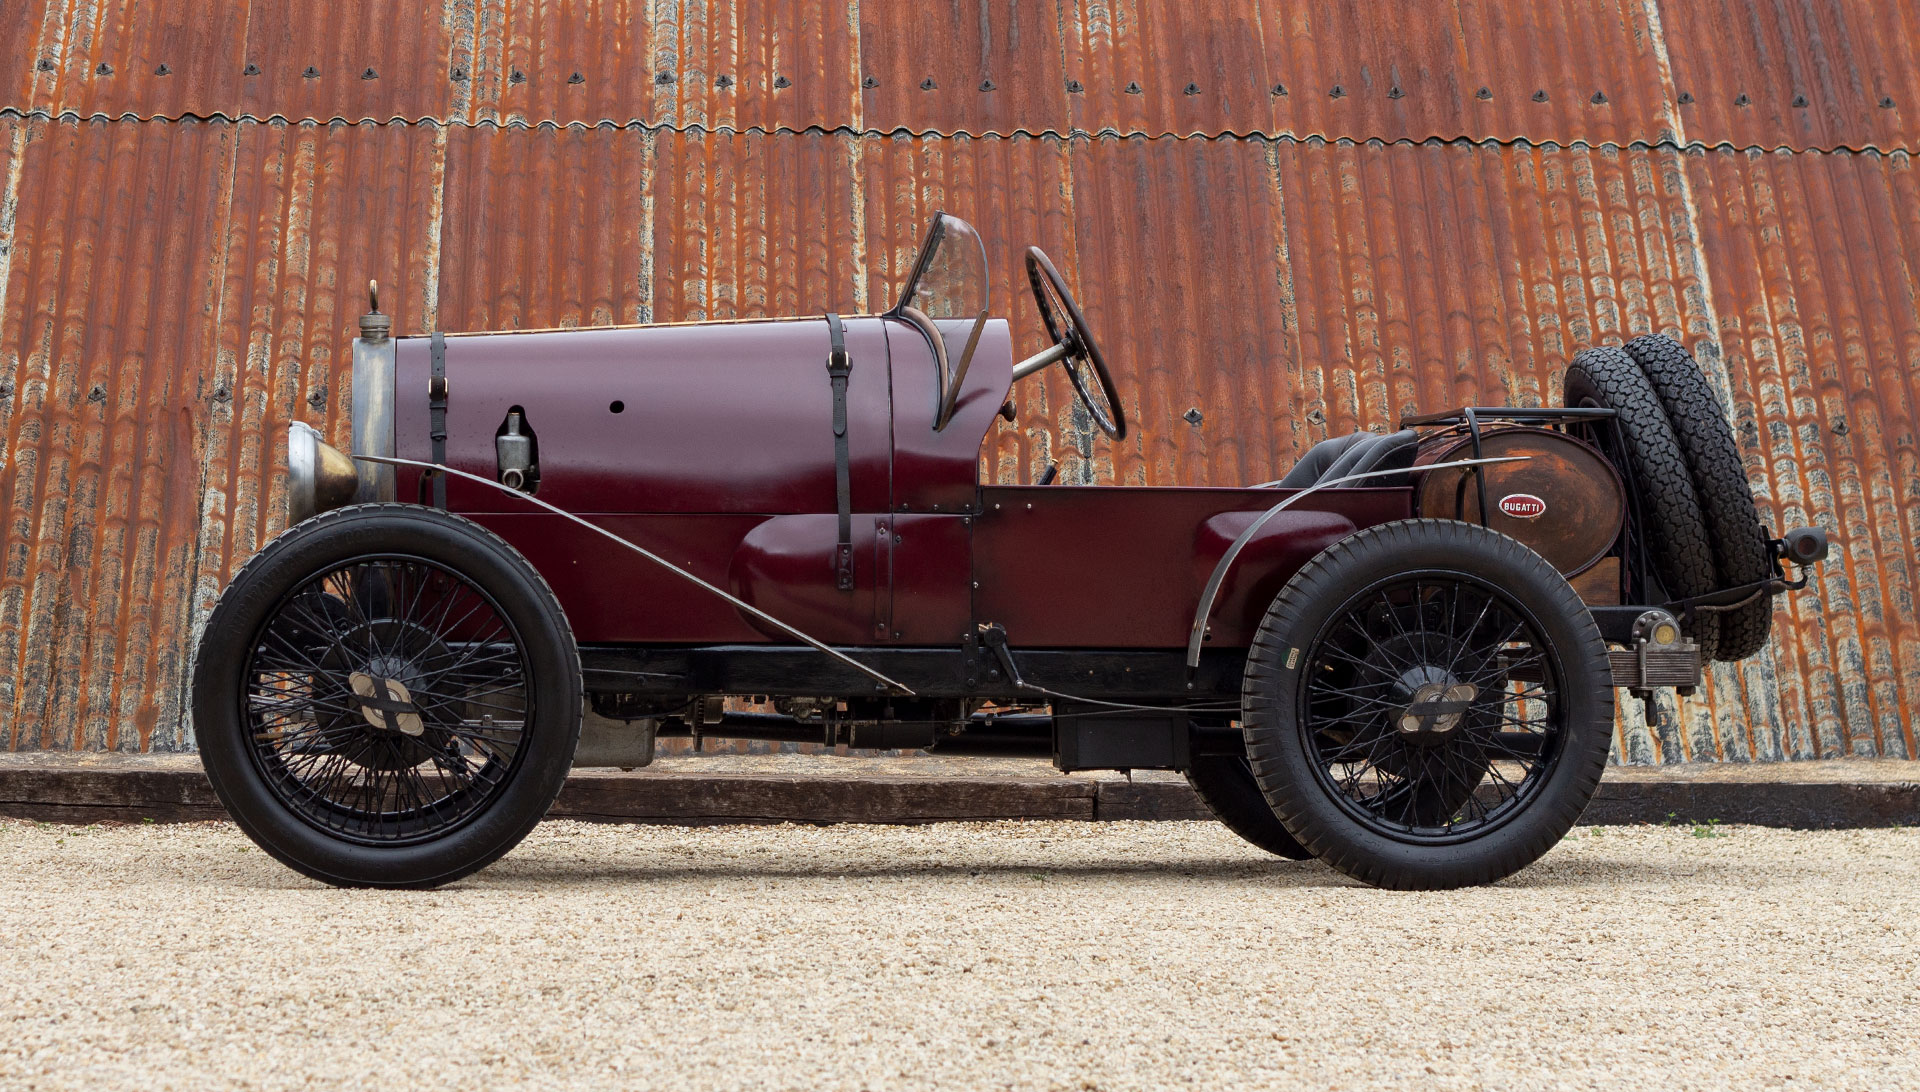 Autoart is committed to producing the best quality scale models … SOLD - 1924 Bugatti Type 13 Brescia - The Classic Motor Hub